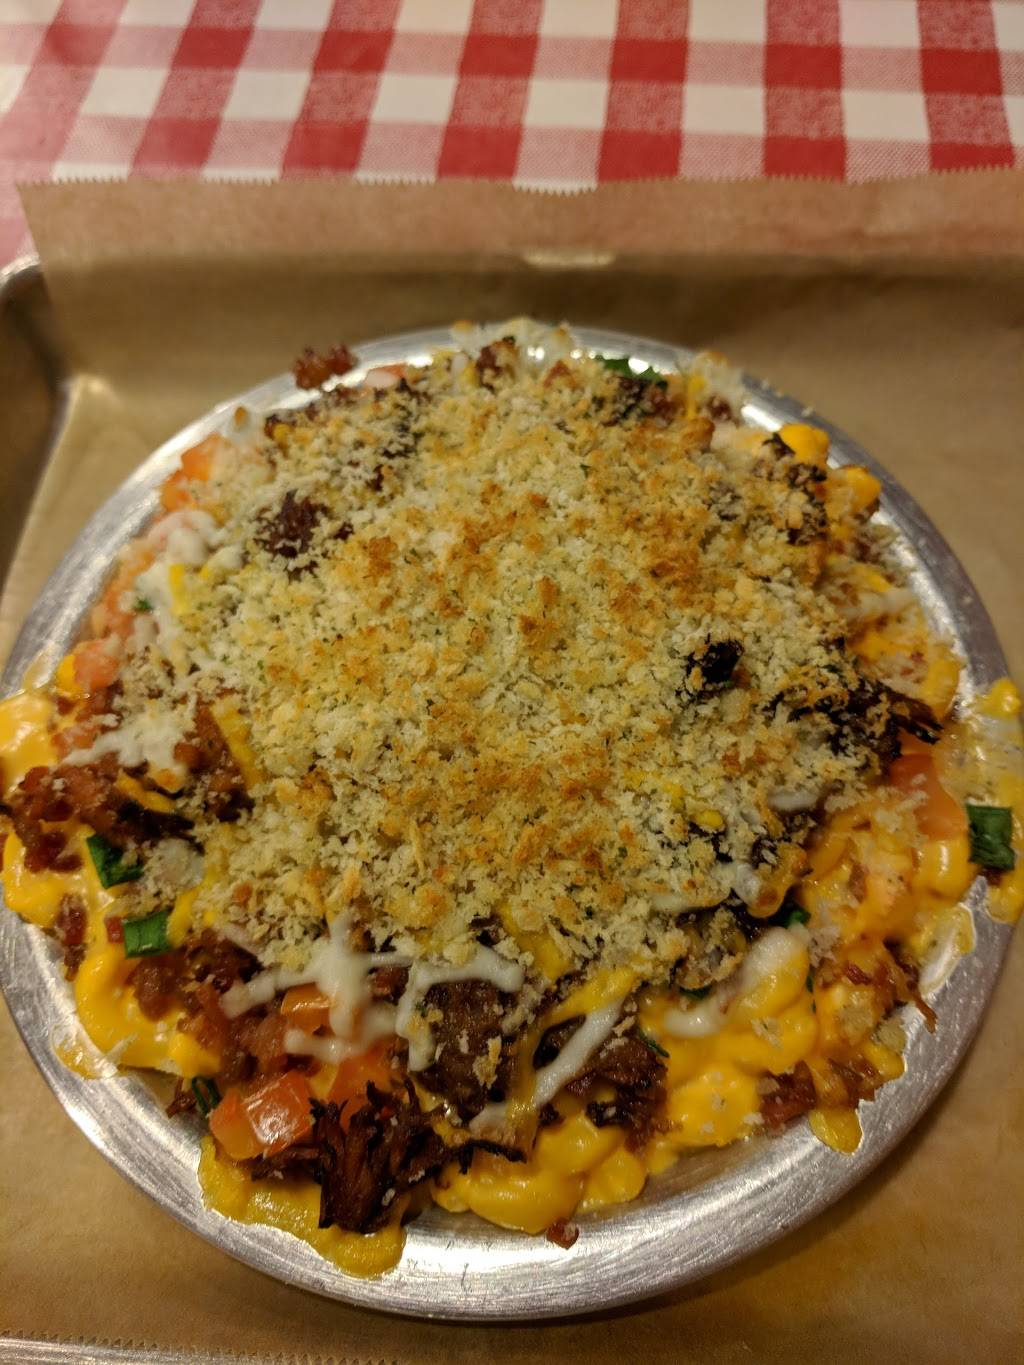 Parker John S Bbq Pizza Kiel Meal Delivery 819 Service Rd Kiel Wi 53042 Usa We're super proud of this one, and some big thanks to danny widdicombe , sean foran john parker samuel vincent yanto browning kristin berardi for. usa restaurants